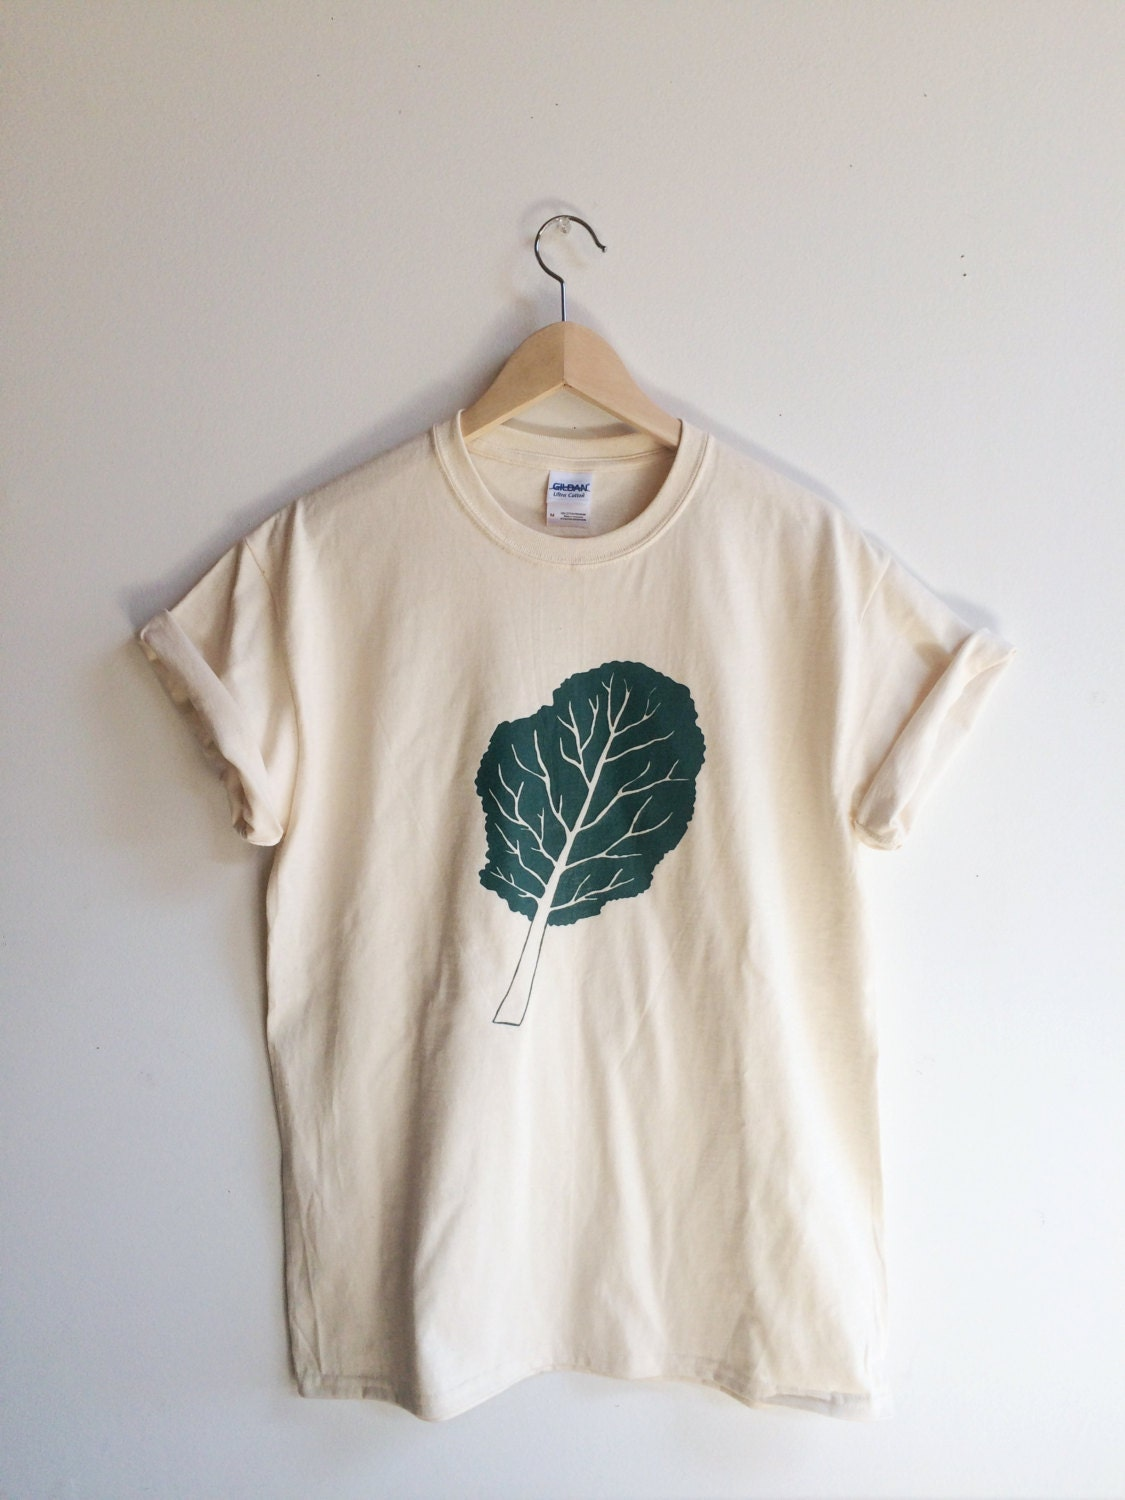 Kale screen printed t shirt kale shirt by andmorgan on etsy for Screen print on t shirts